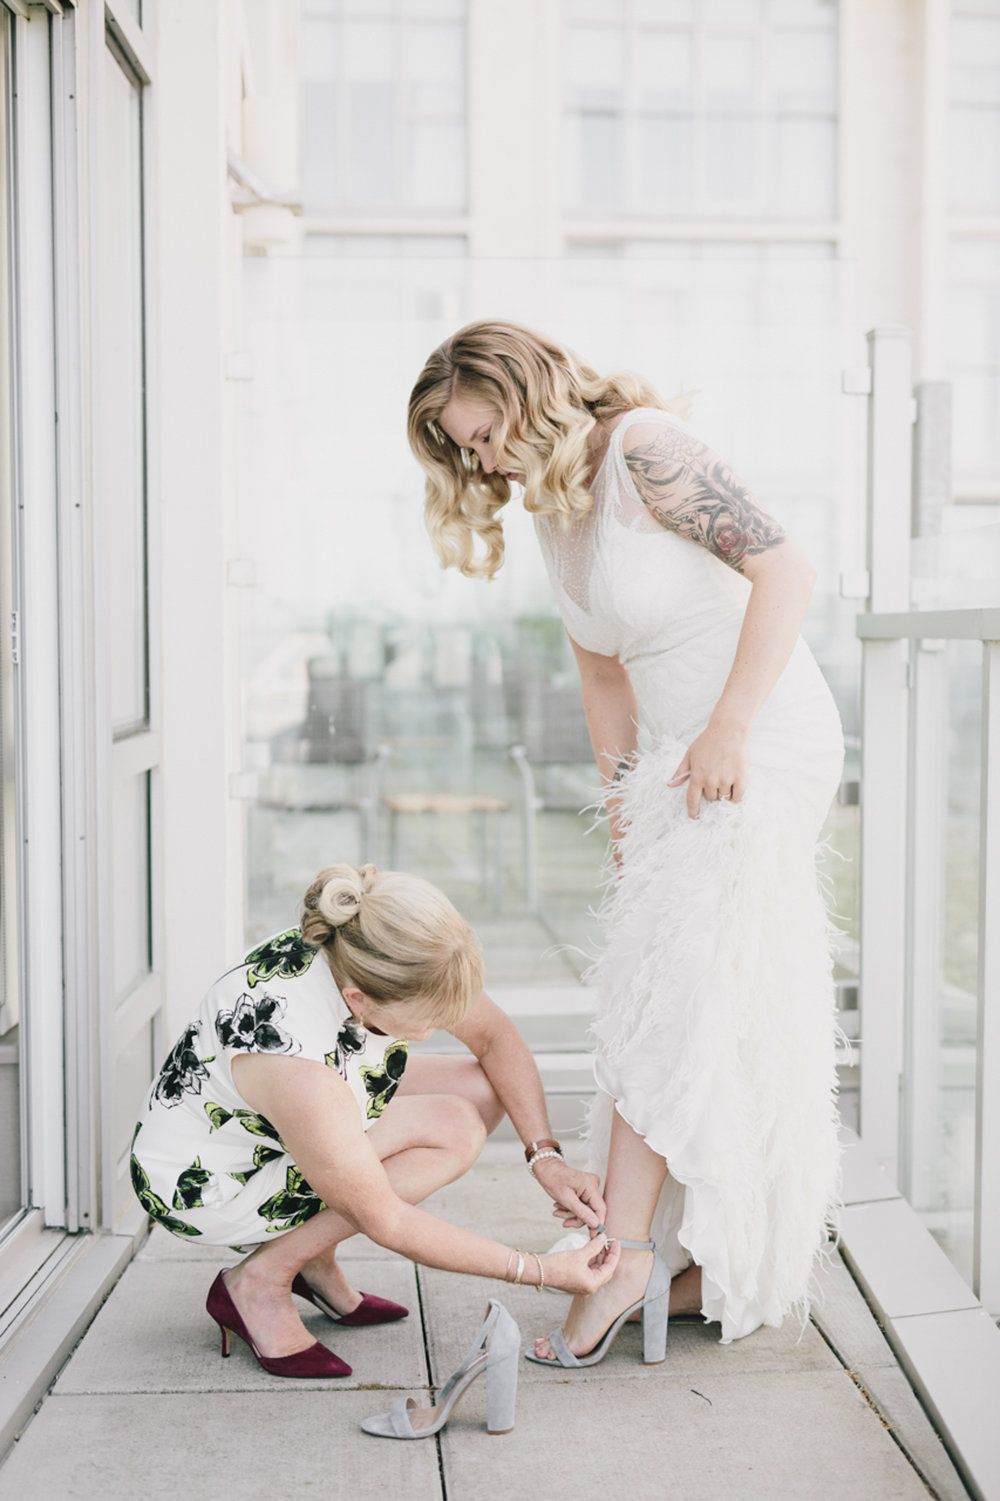 Hannah+Sam-_Getting-Ready-53.jpg